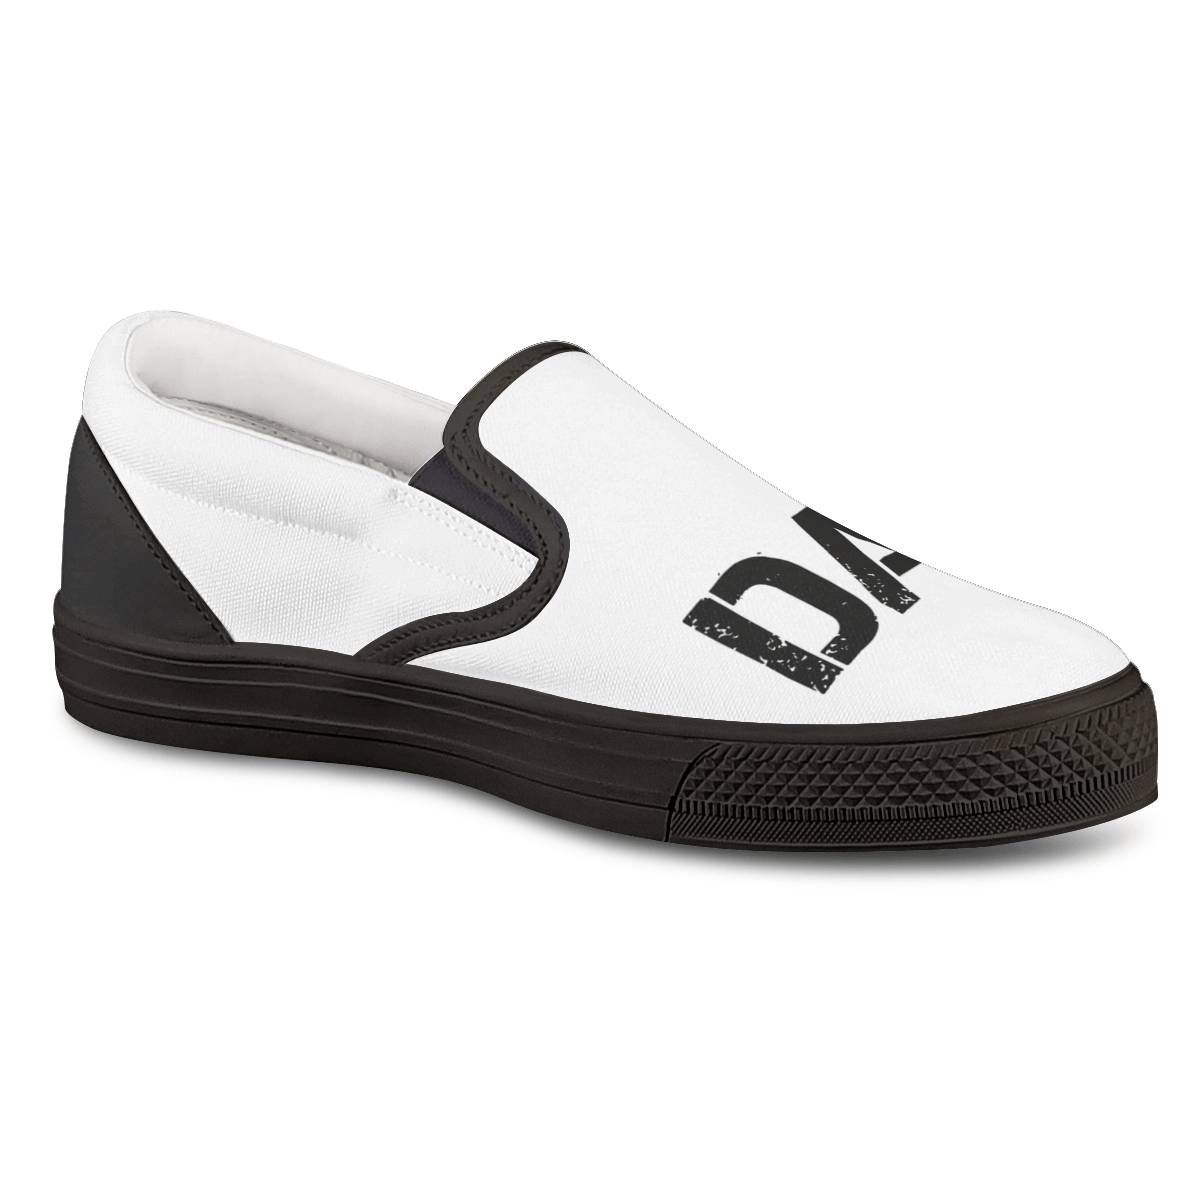 De'Anthony DAT Official Slip On Shoes